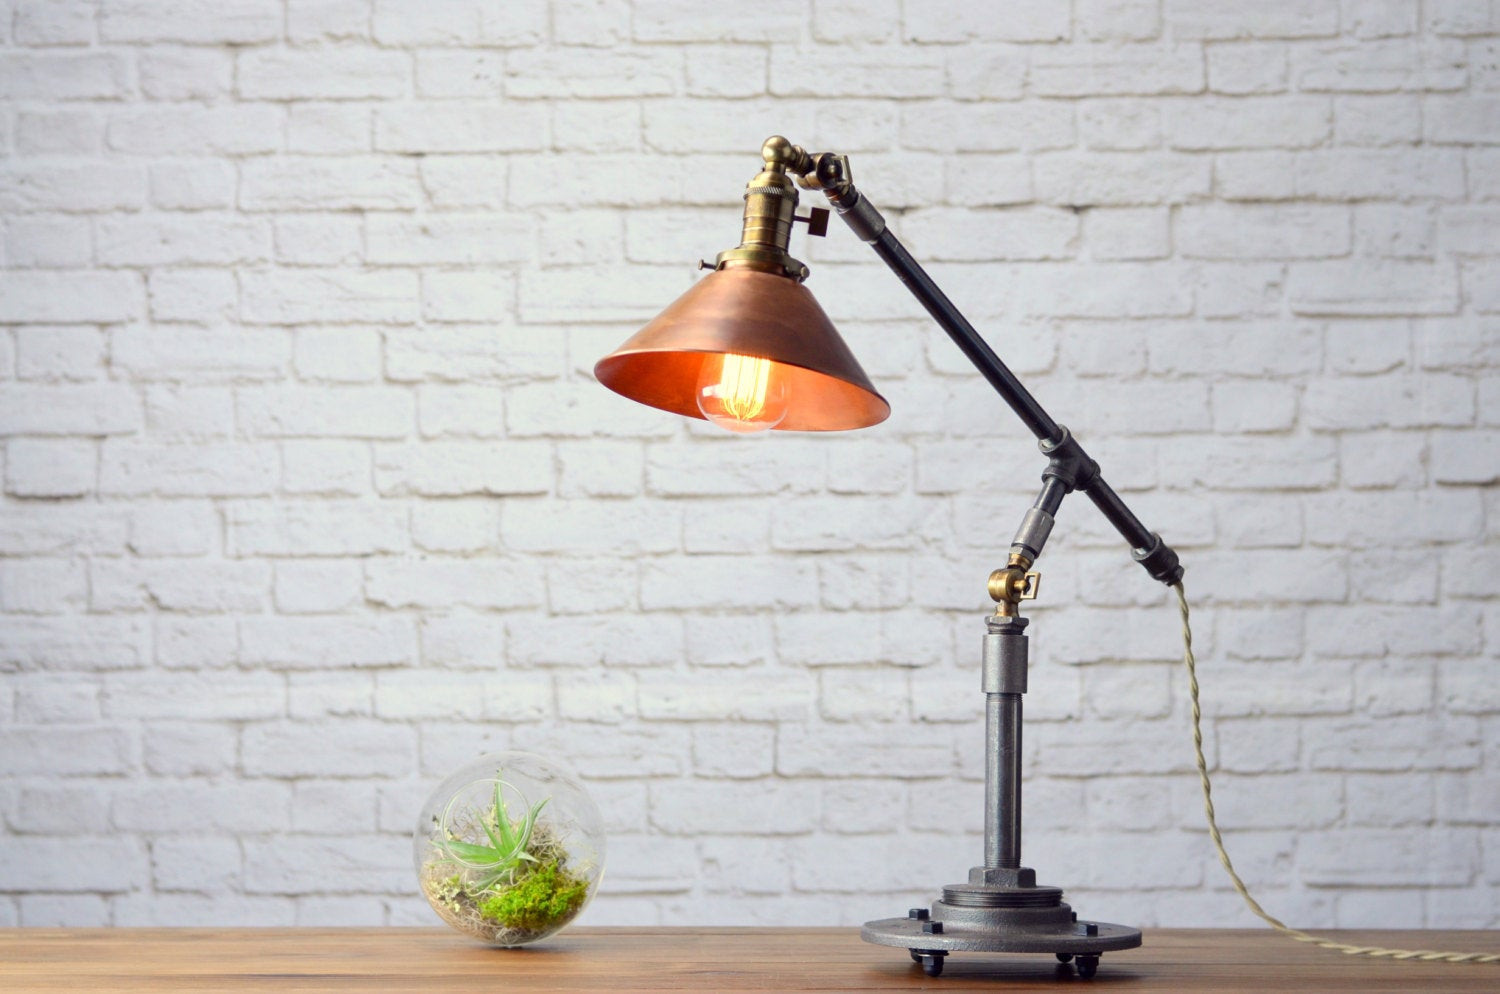 Best ideas about Industrial Desk Lamp . Save or Pin Industrial Table Lamp Edison Desk Lamp Copper Lamp Pipe Now.